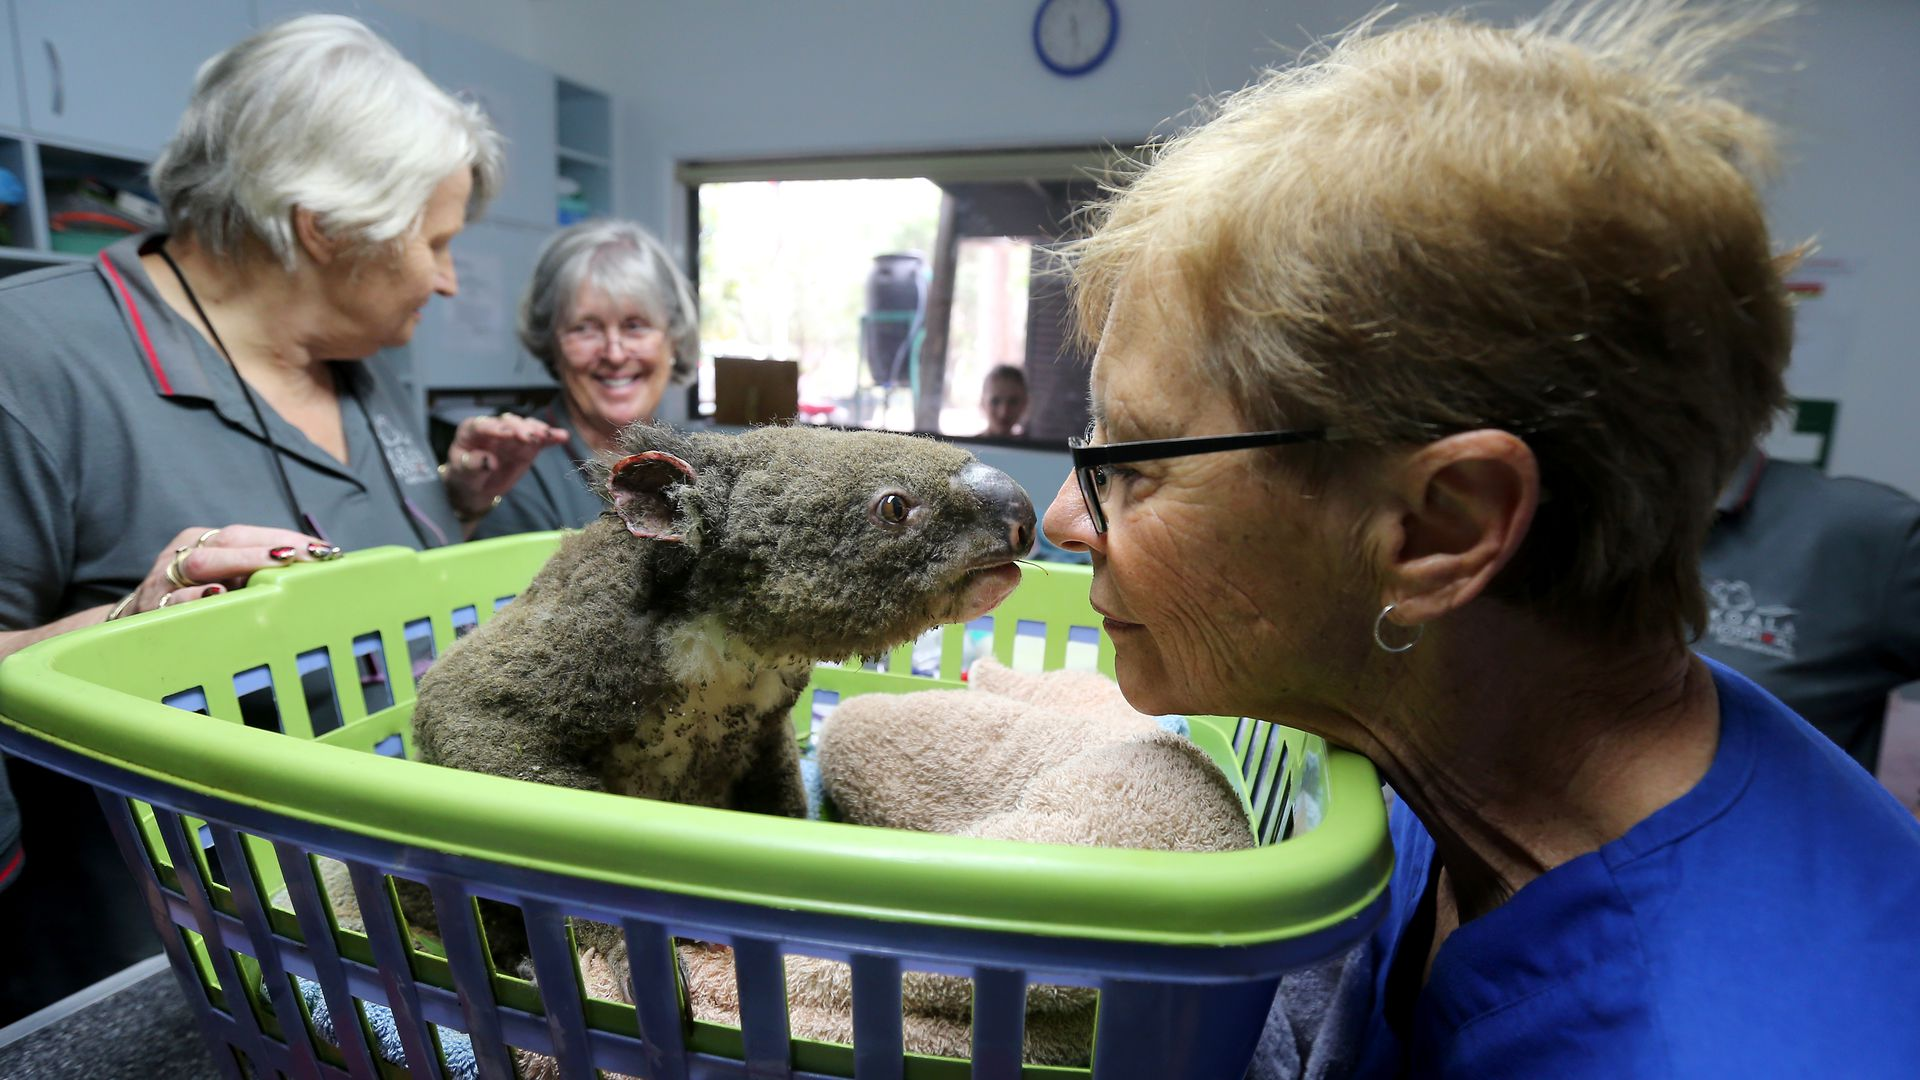 Koala recovering from burns at an animal hospital